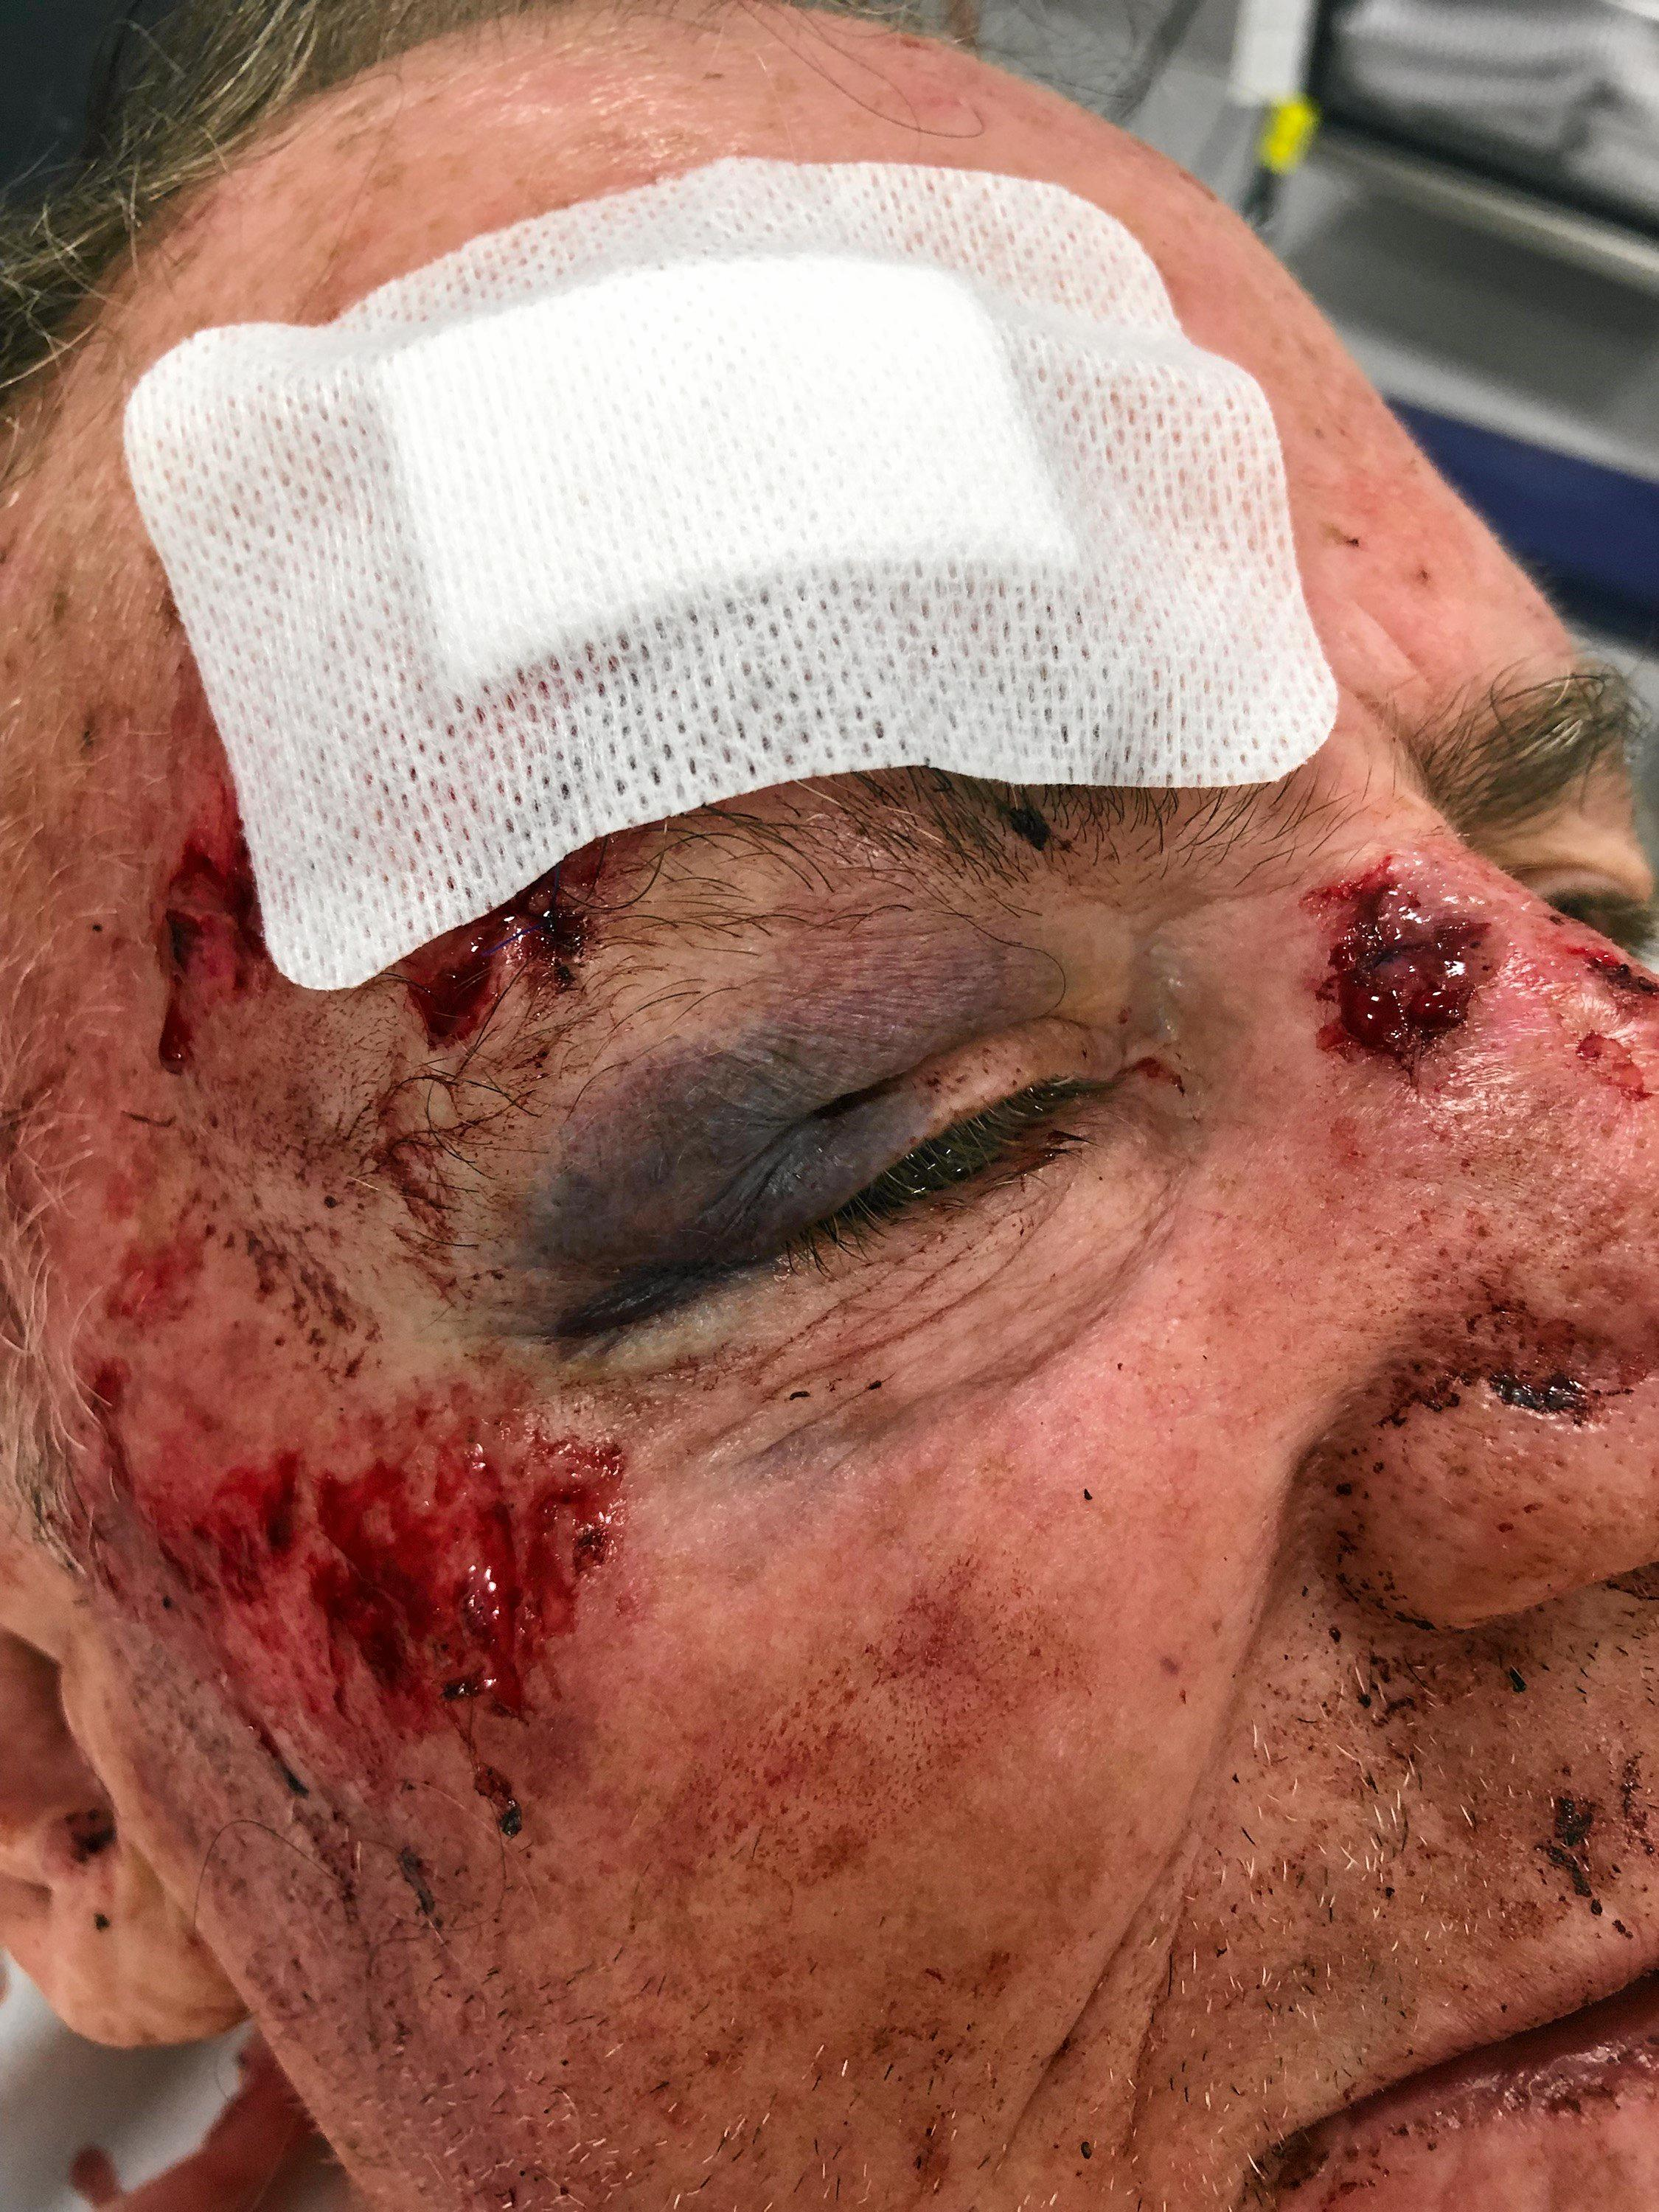 Ray was allegedly hit in the back of the head while working in Caloundra early Wednesday morning